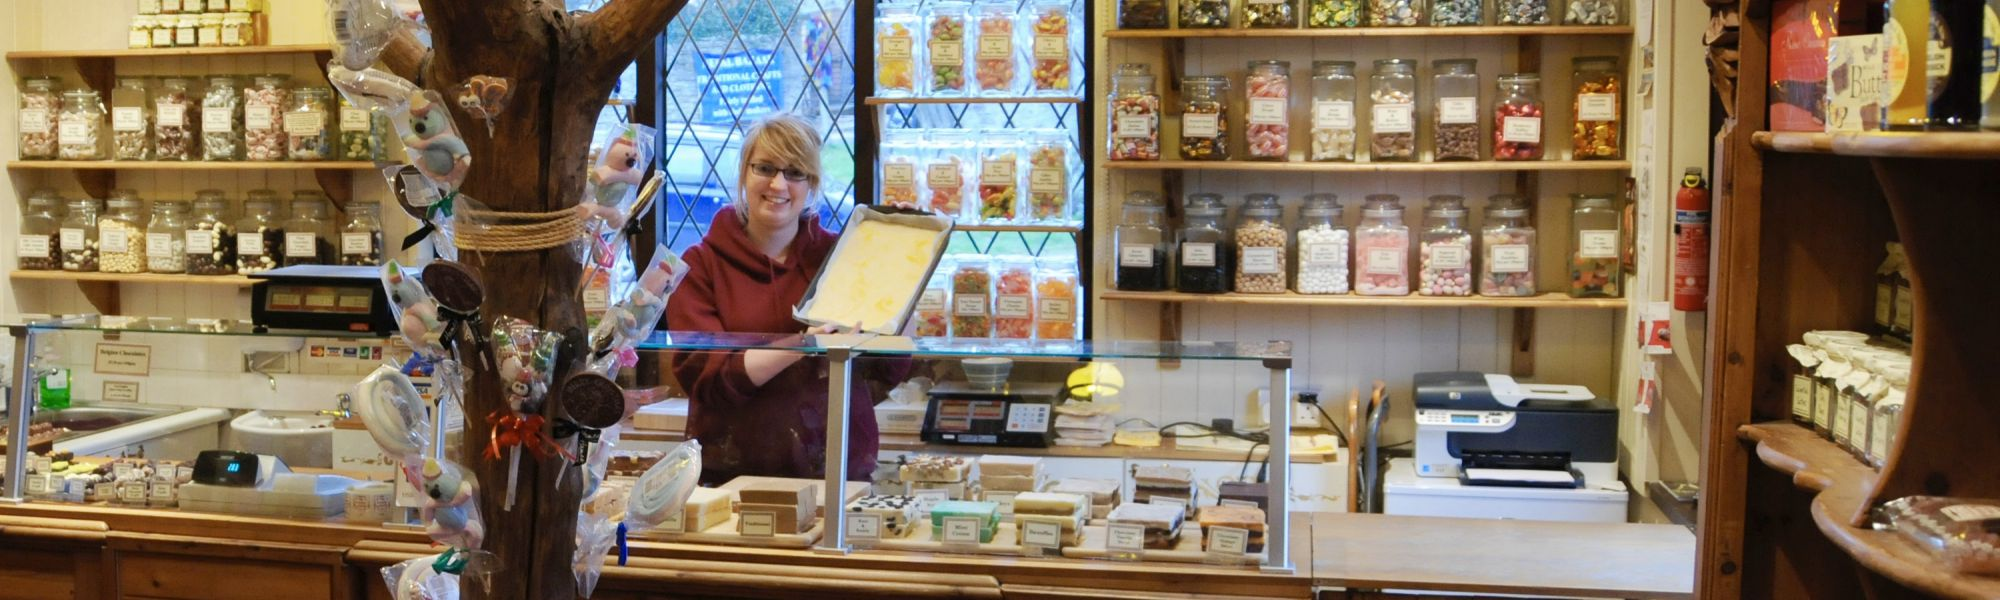 The Fudge Shop, handmade fudge in Hay-on-Wye